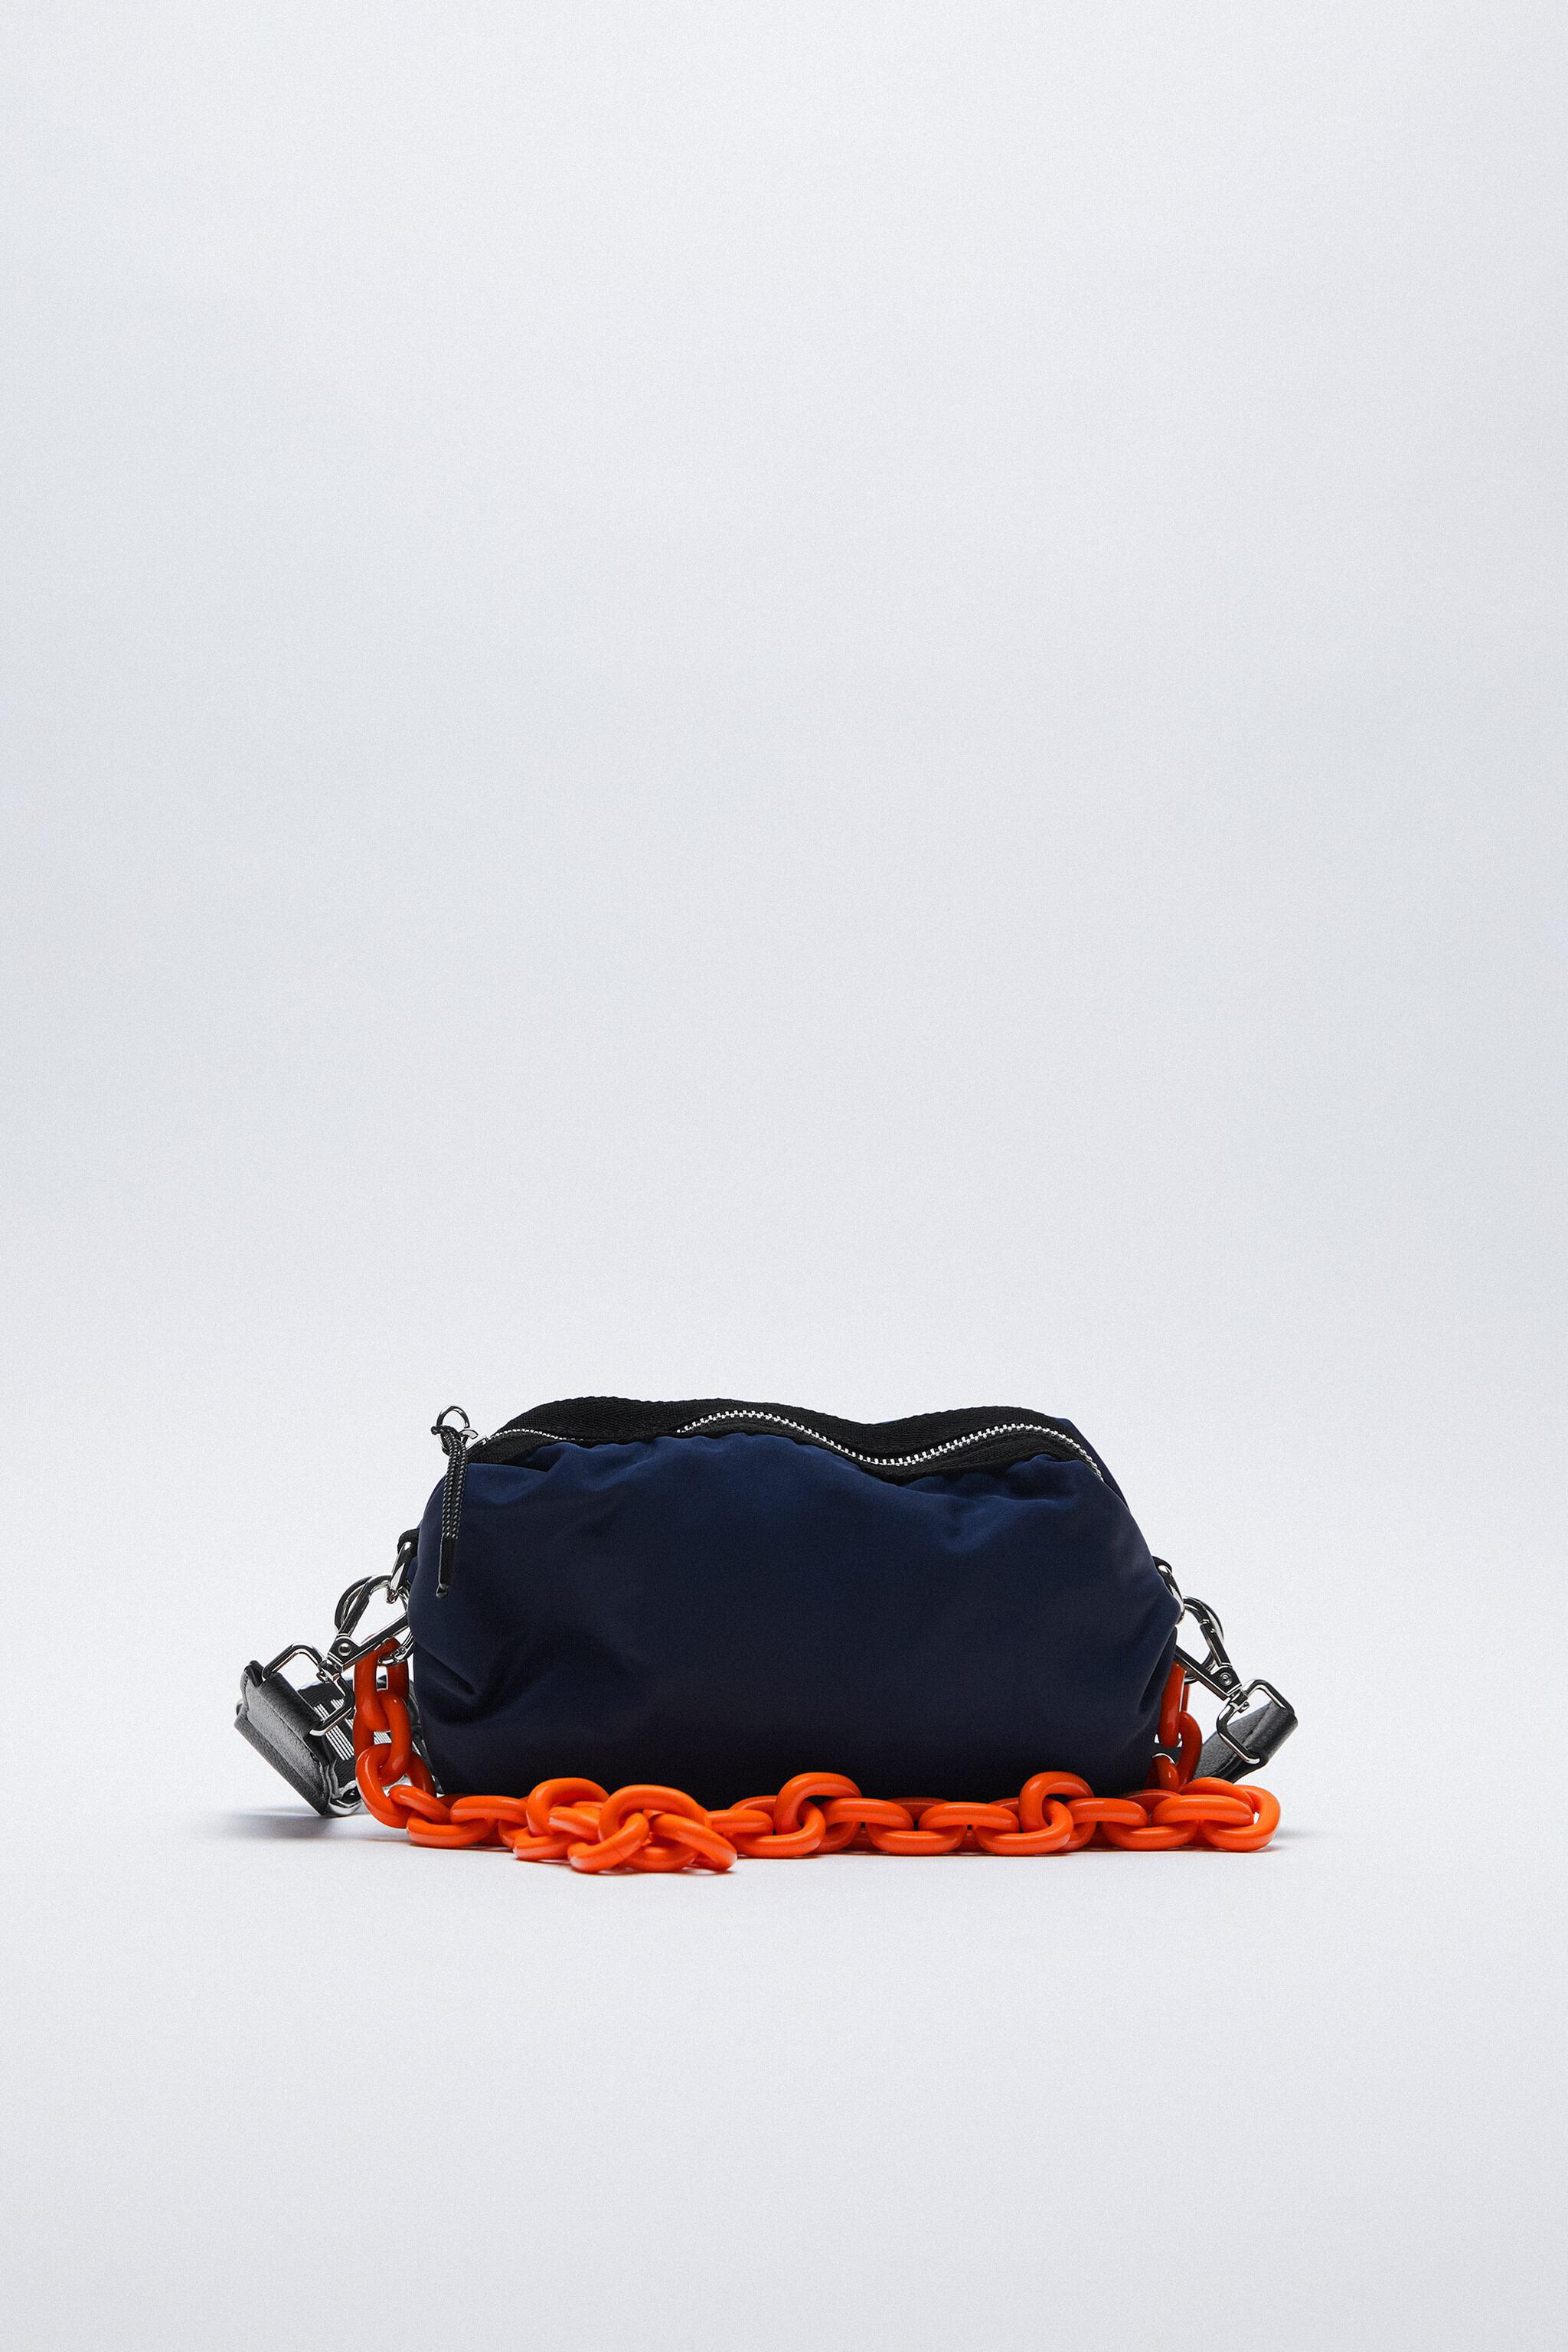 NYLON CROSSBODY BAG WITH CHAIN AND TEXT DETAIL 0